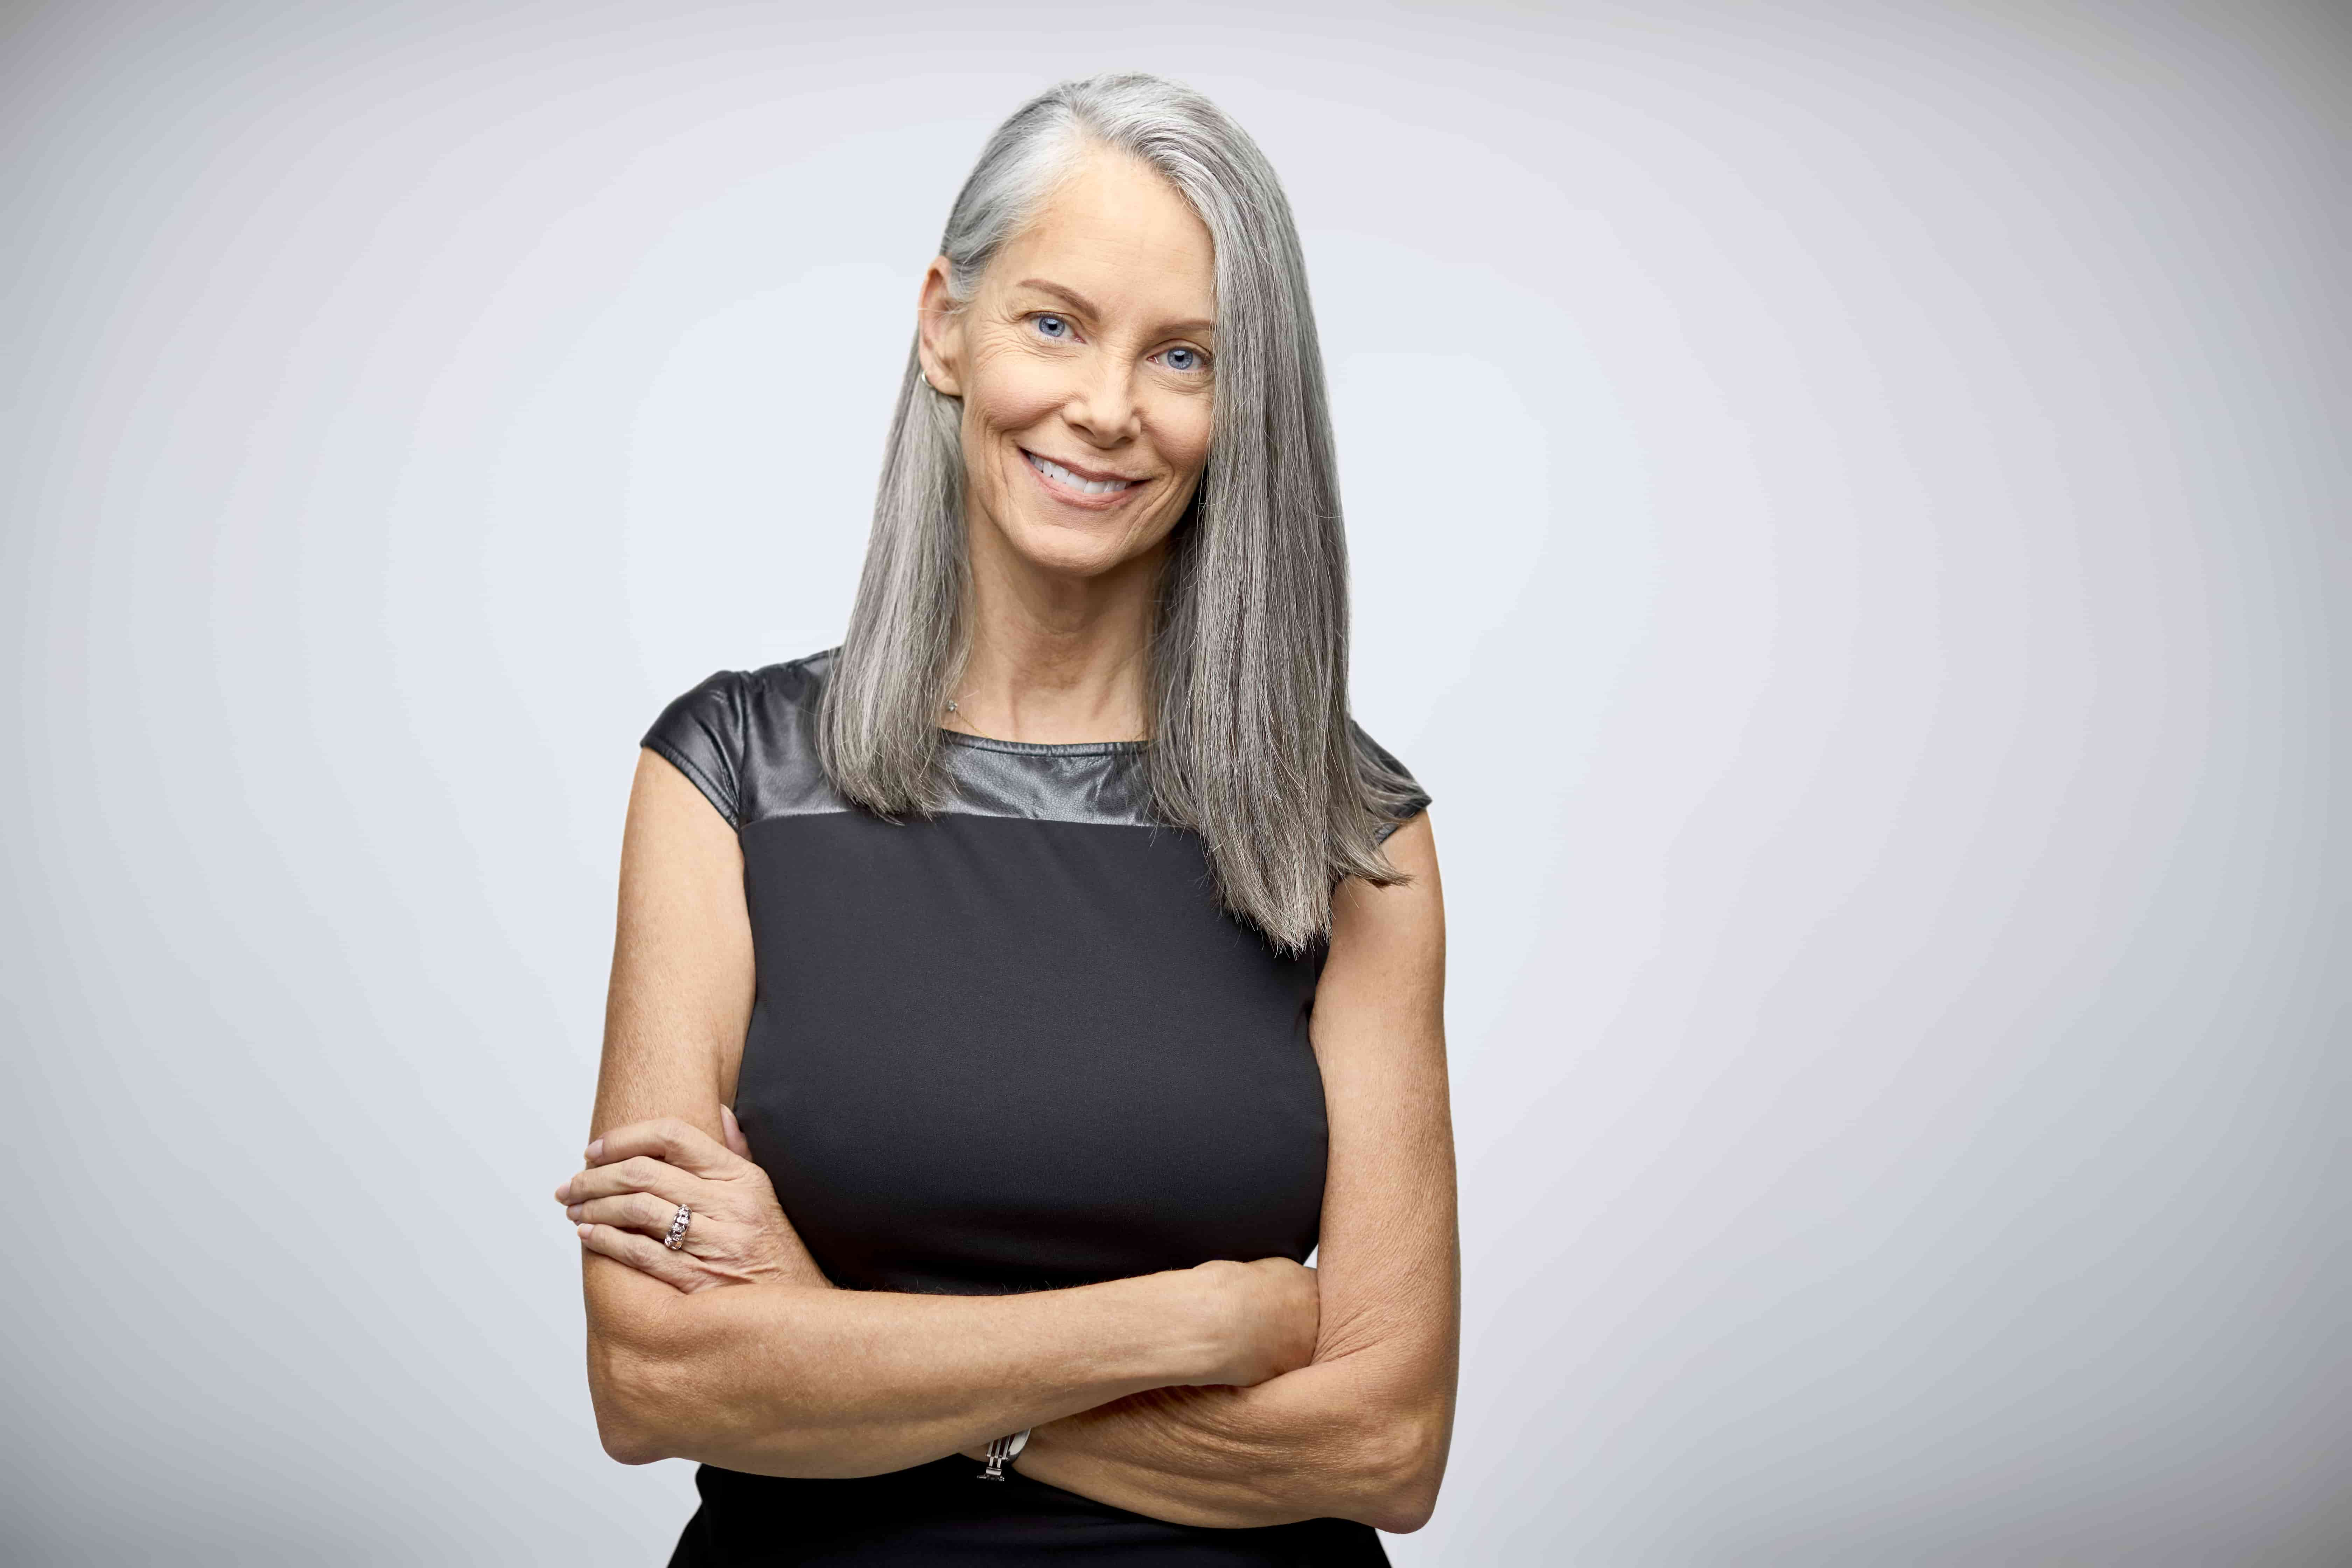 elegant woman with long grey hair smiling to the camera